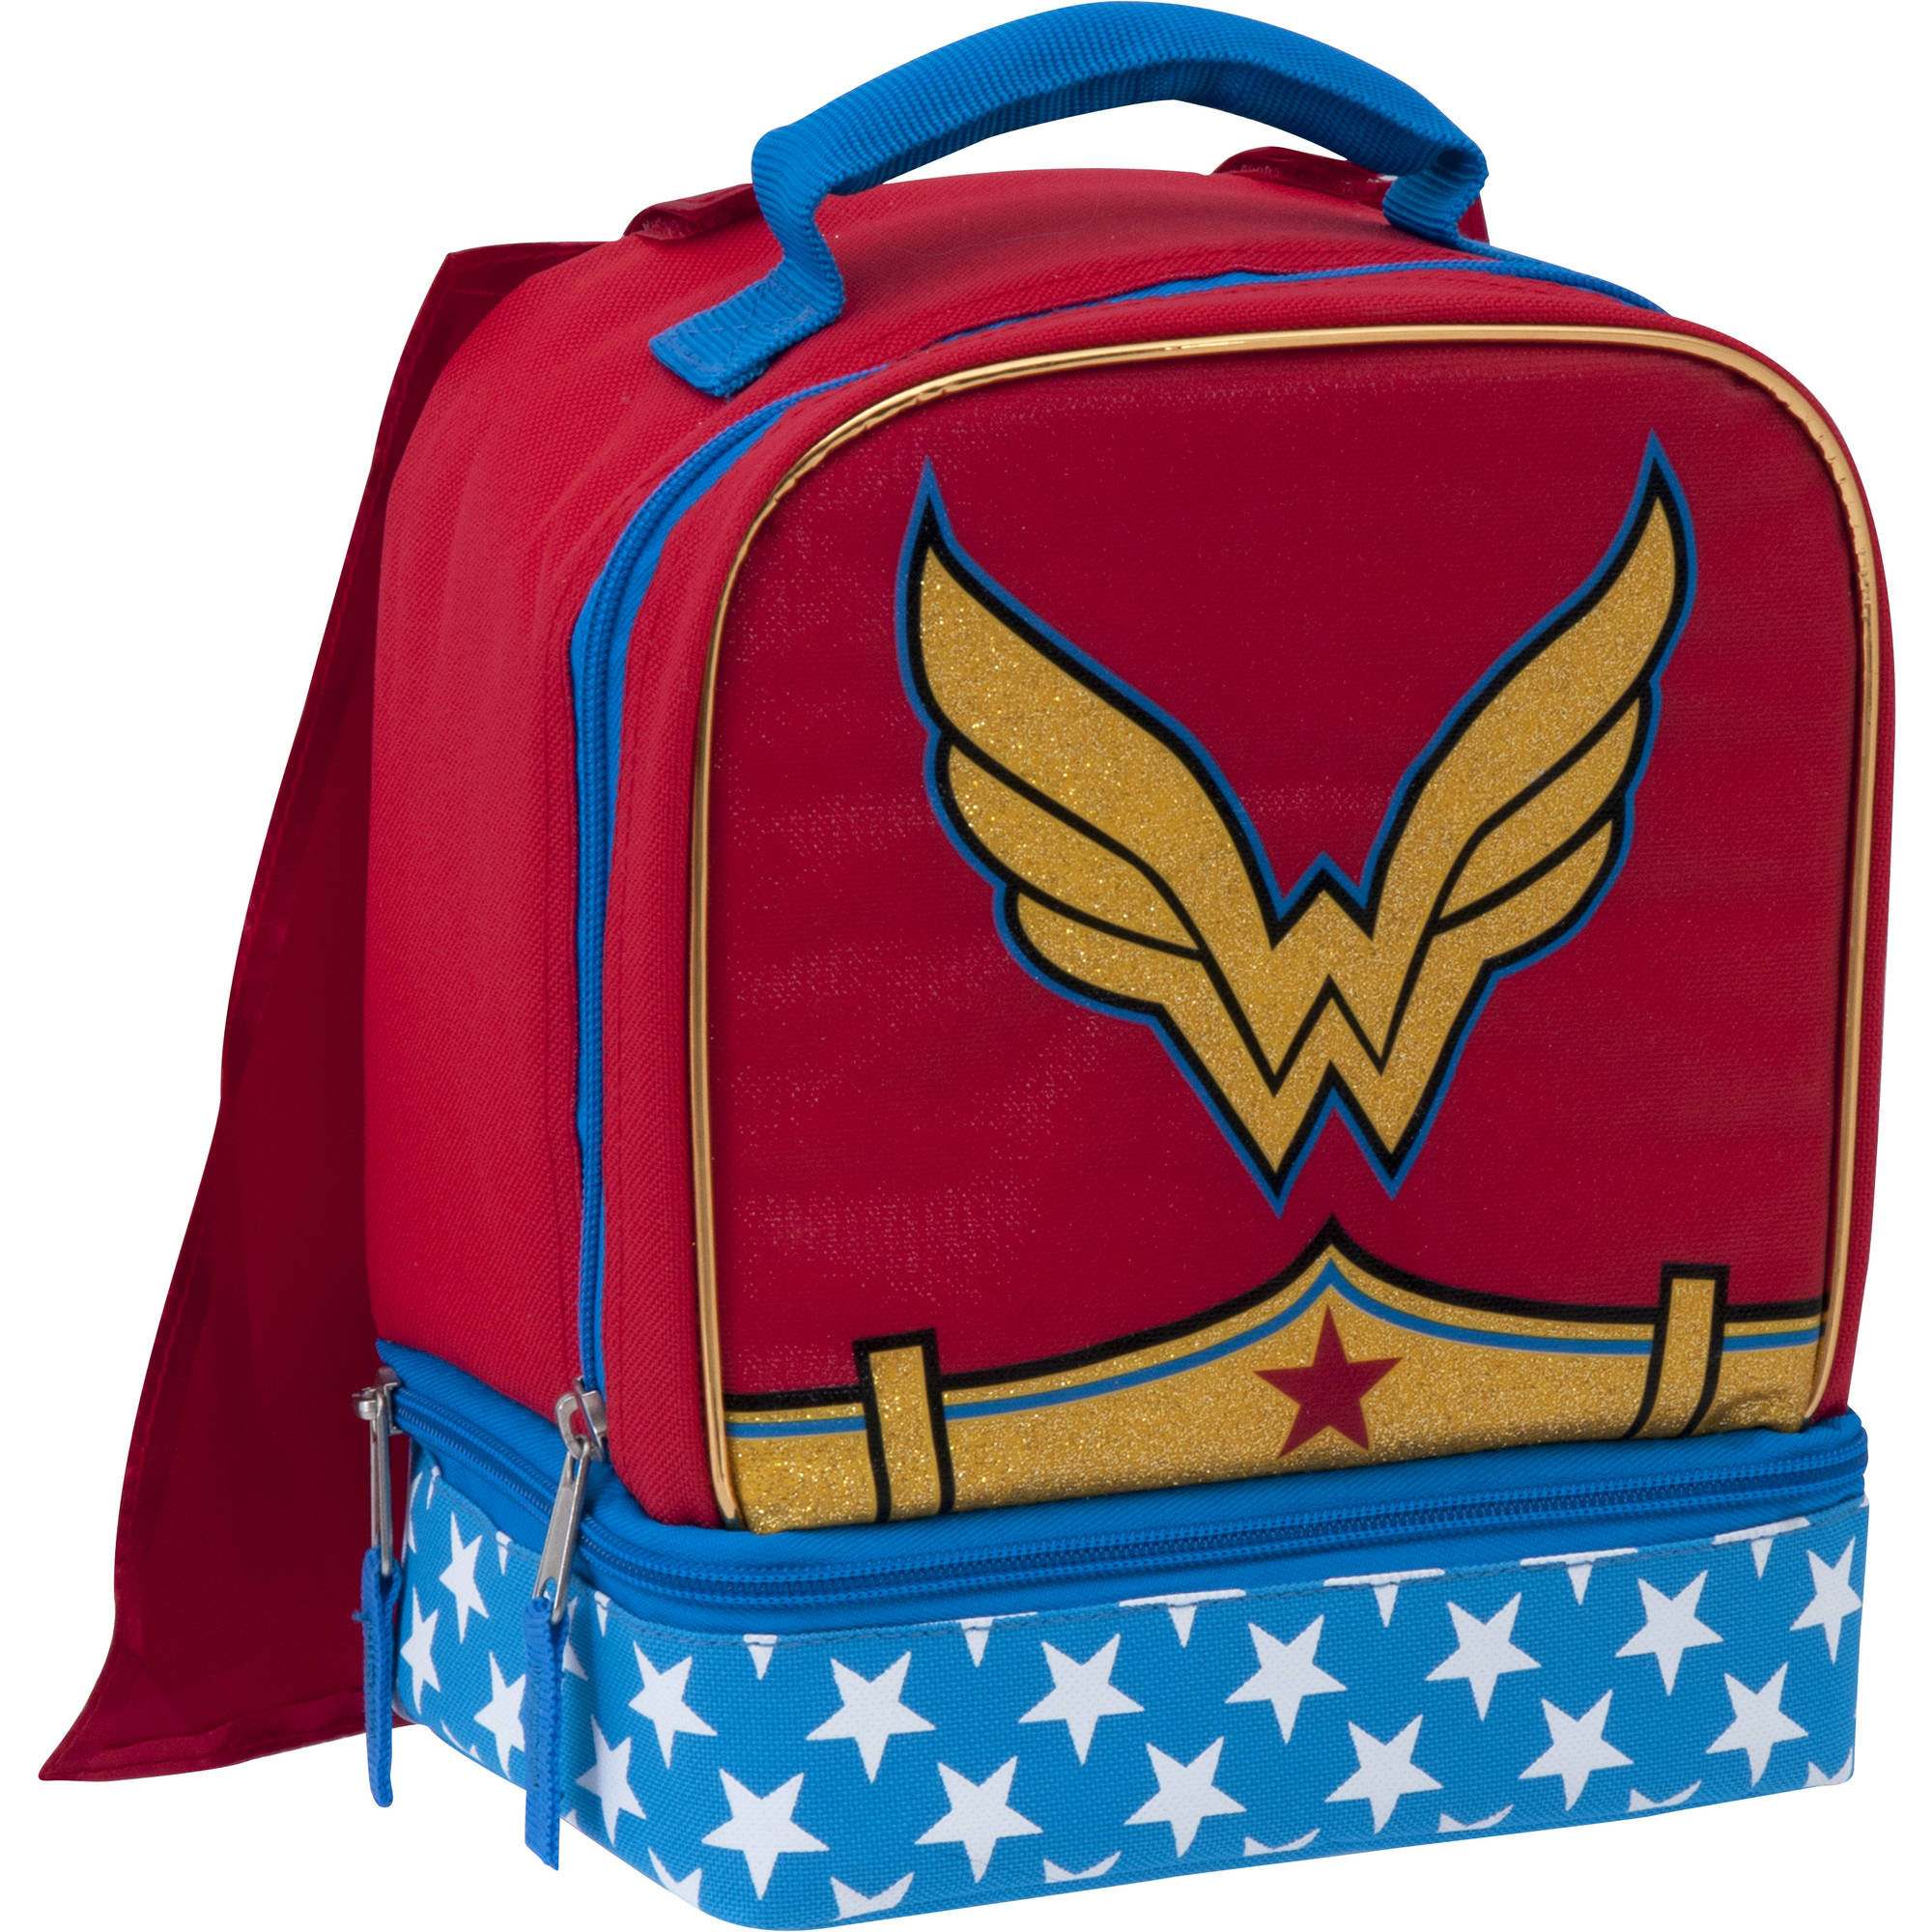 Warner Bro's Wonder Woman Insulated Dual Compartment Lunch Bag